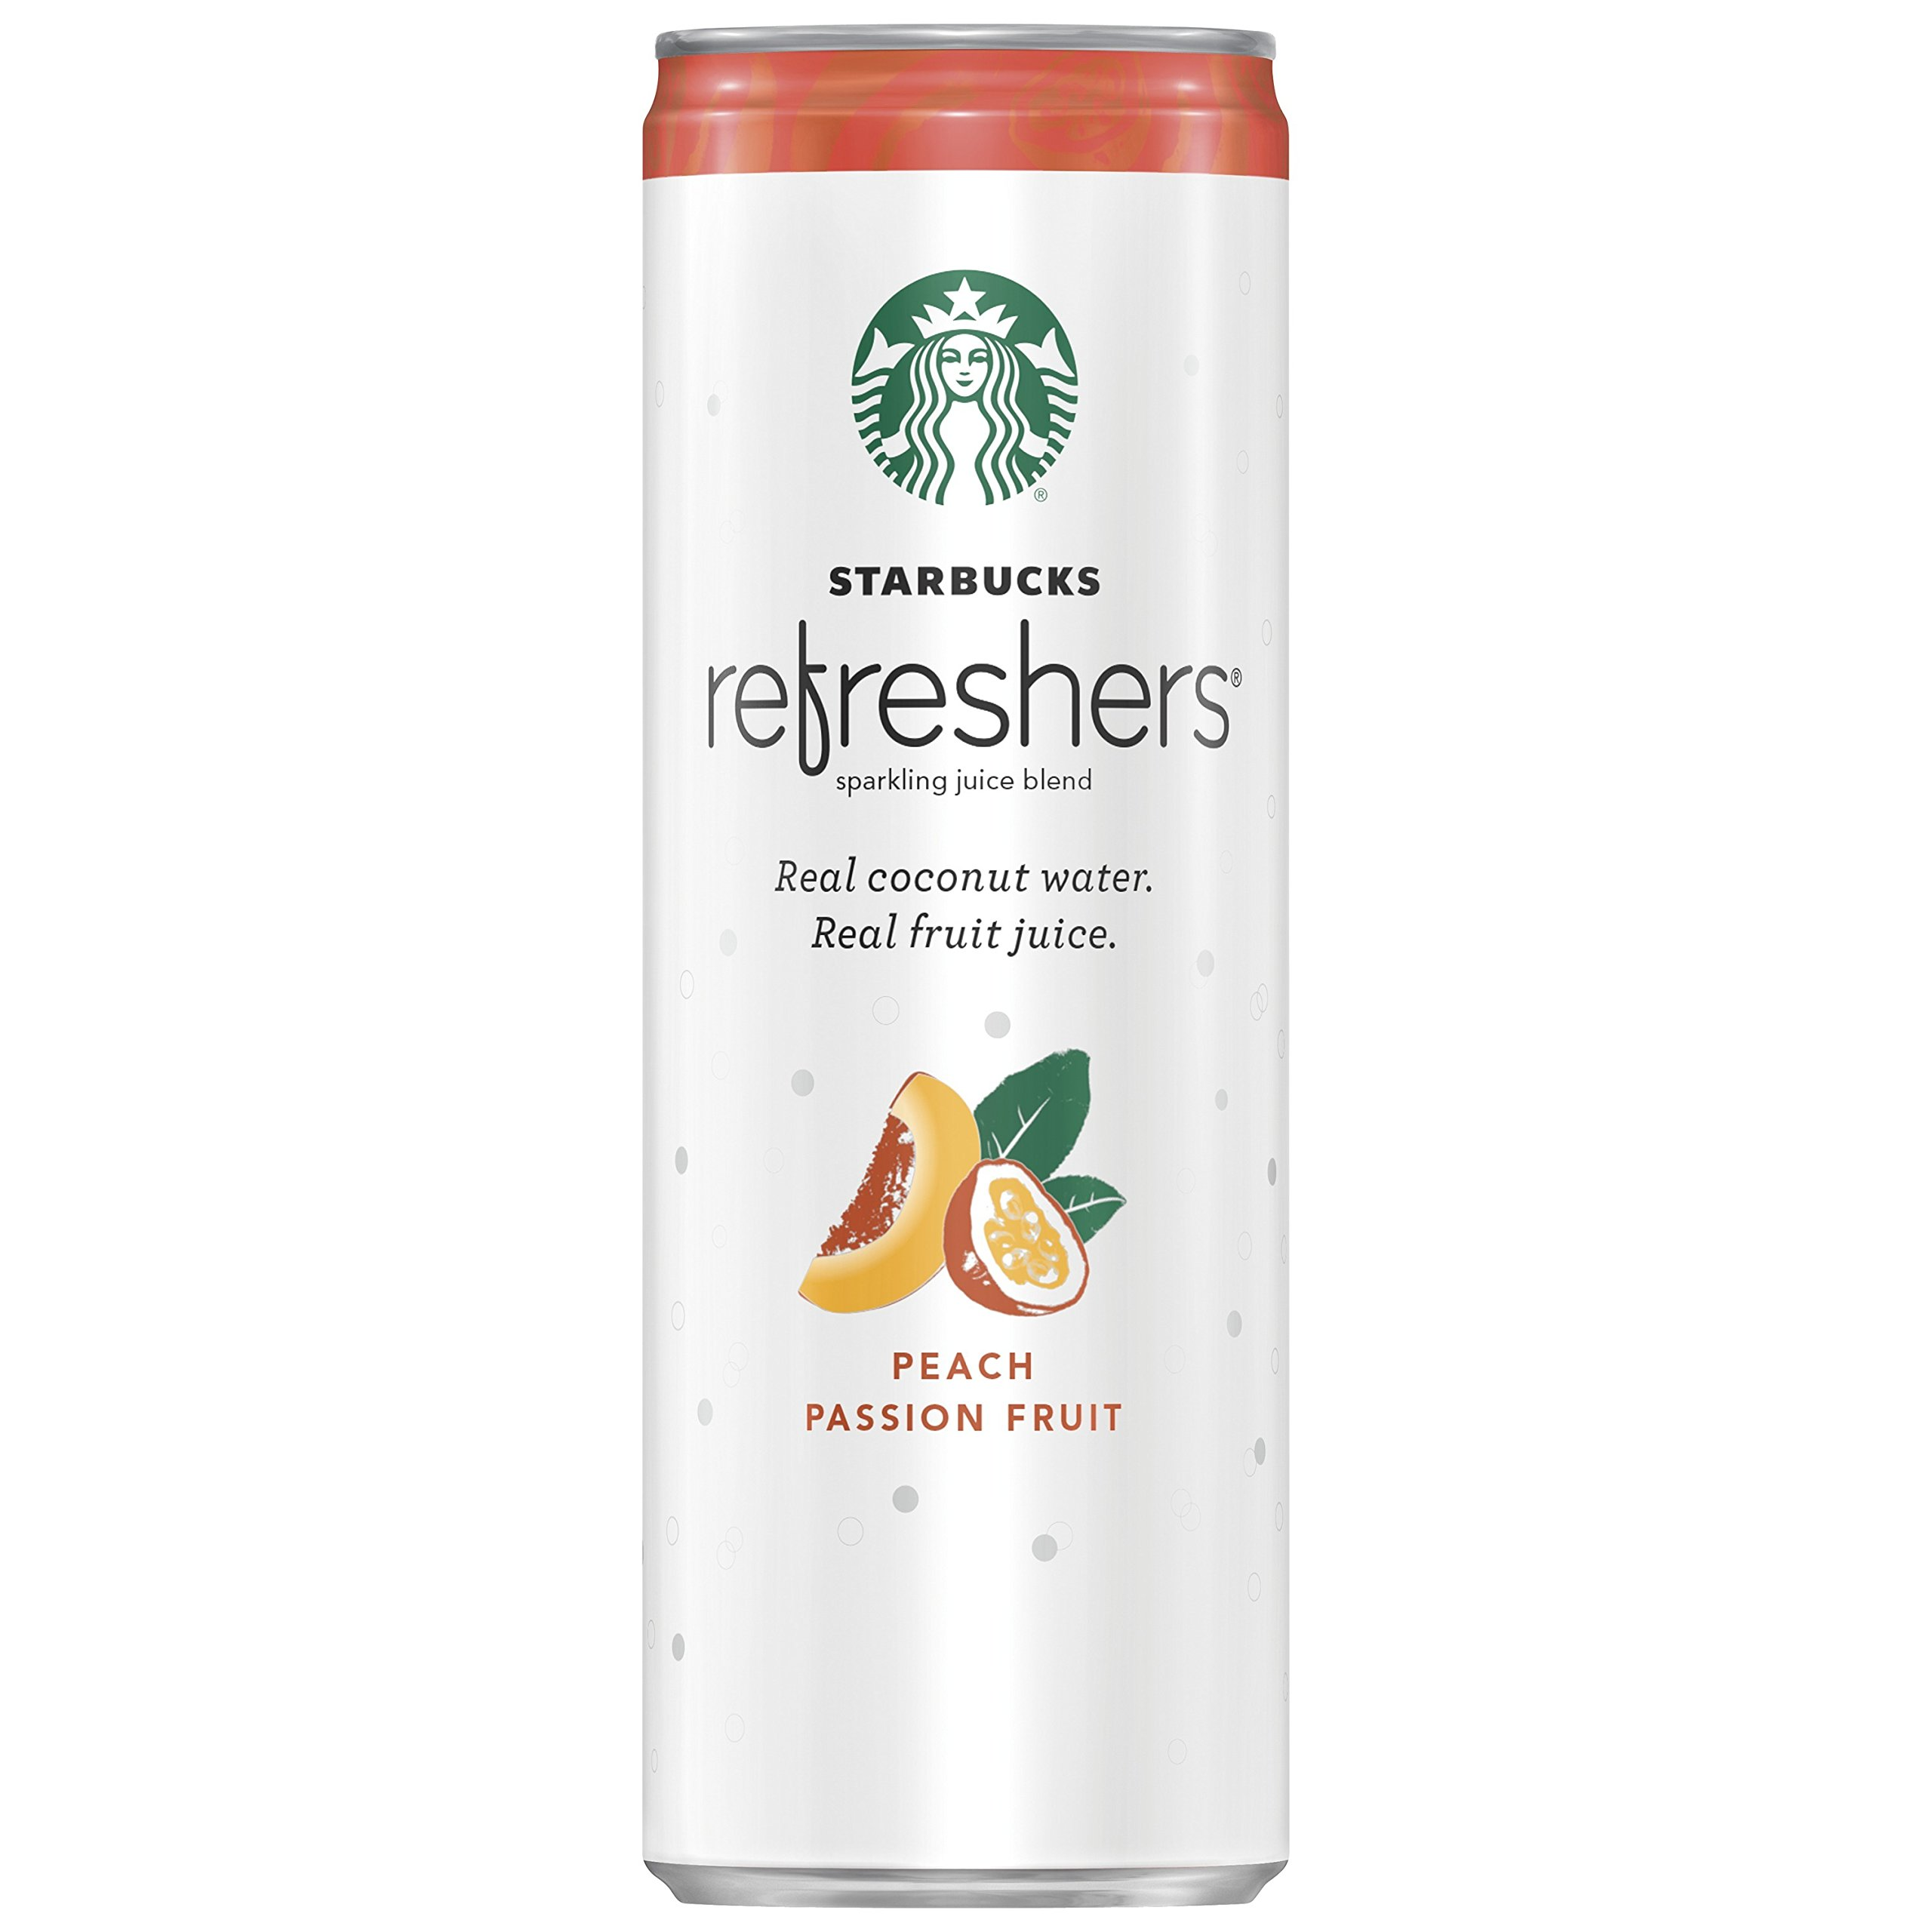 Starbucks Refreshers, Peach Passion Fruit with Coconut Water, 12 Ounce Cans, (pack of 12) (packaging may vary)